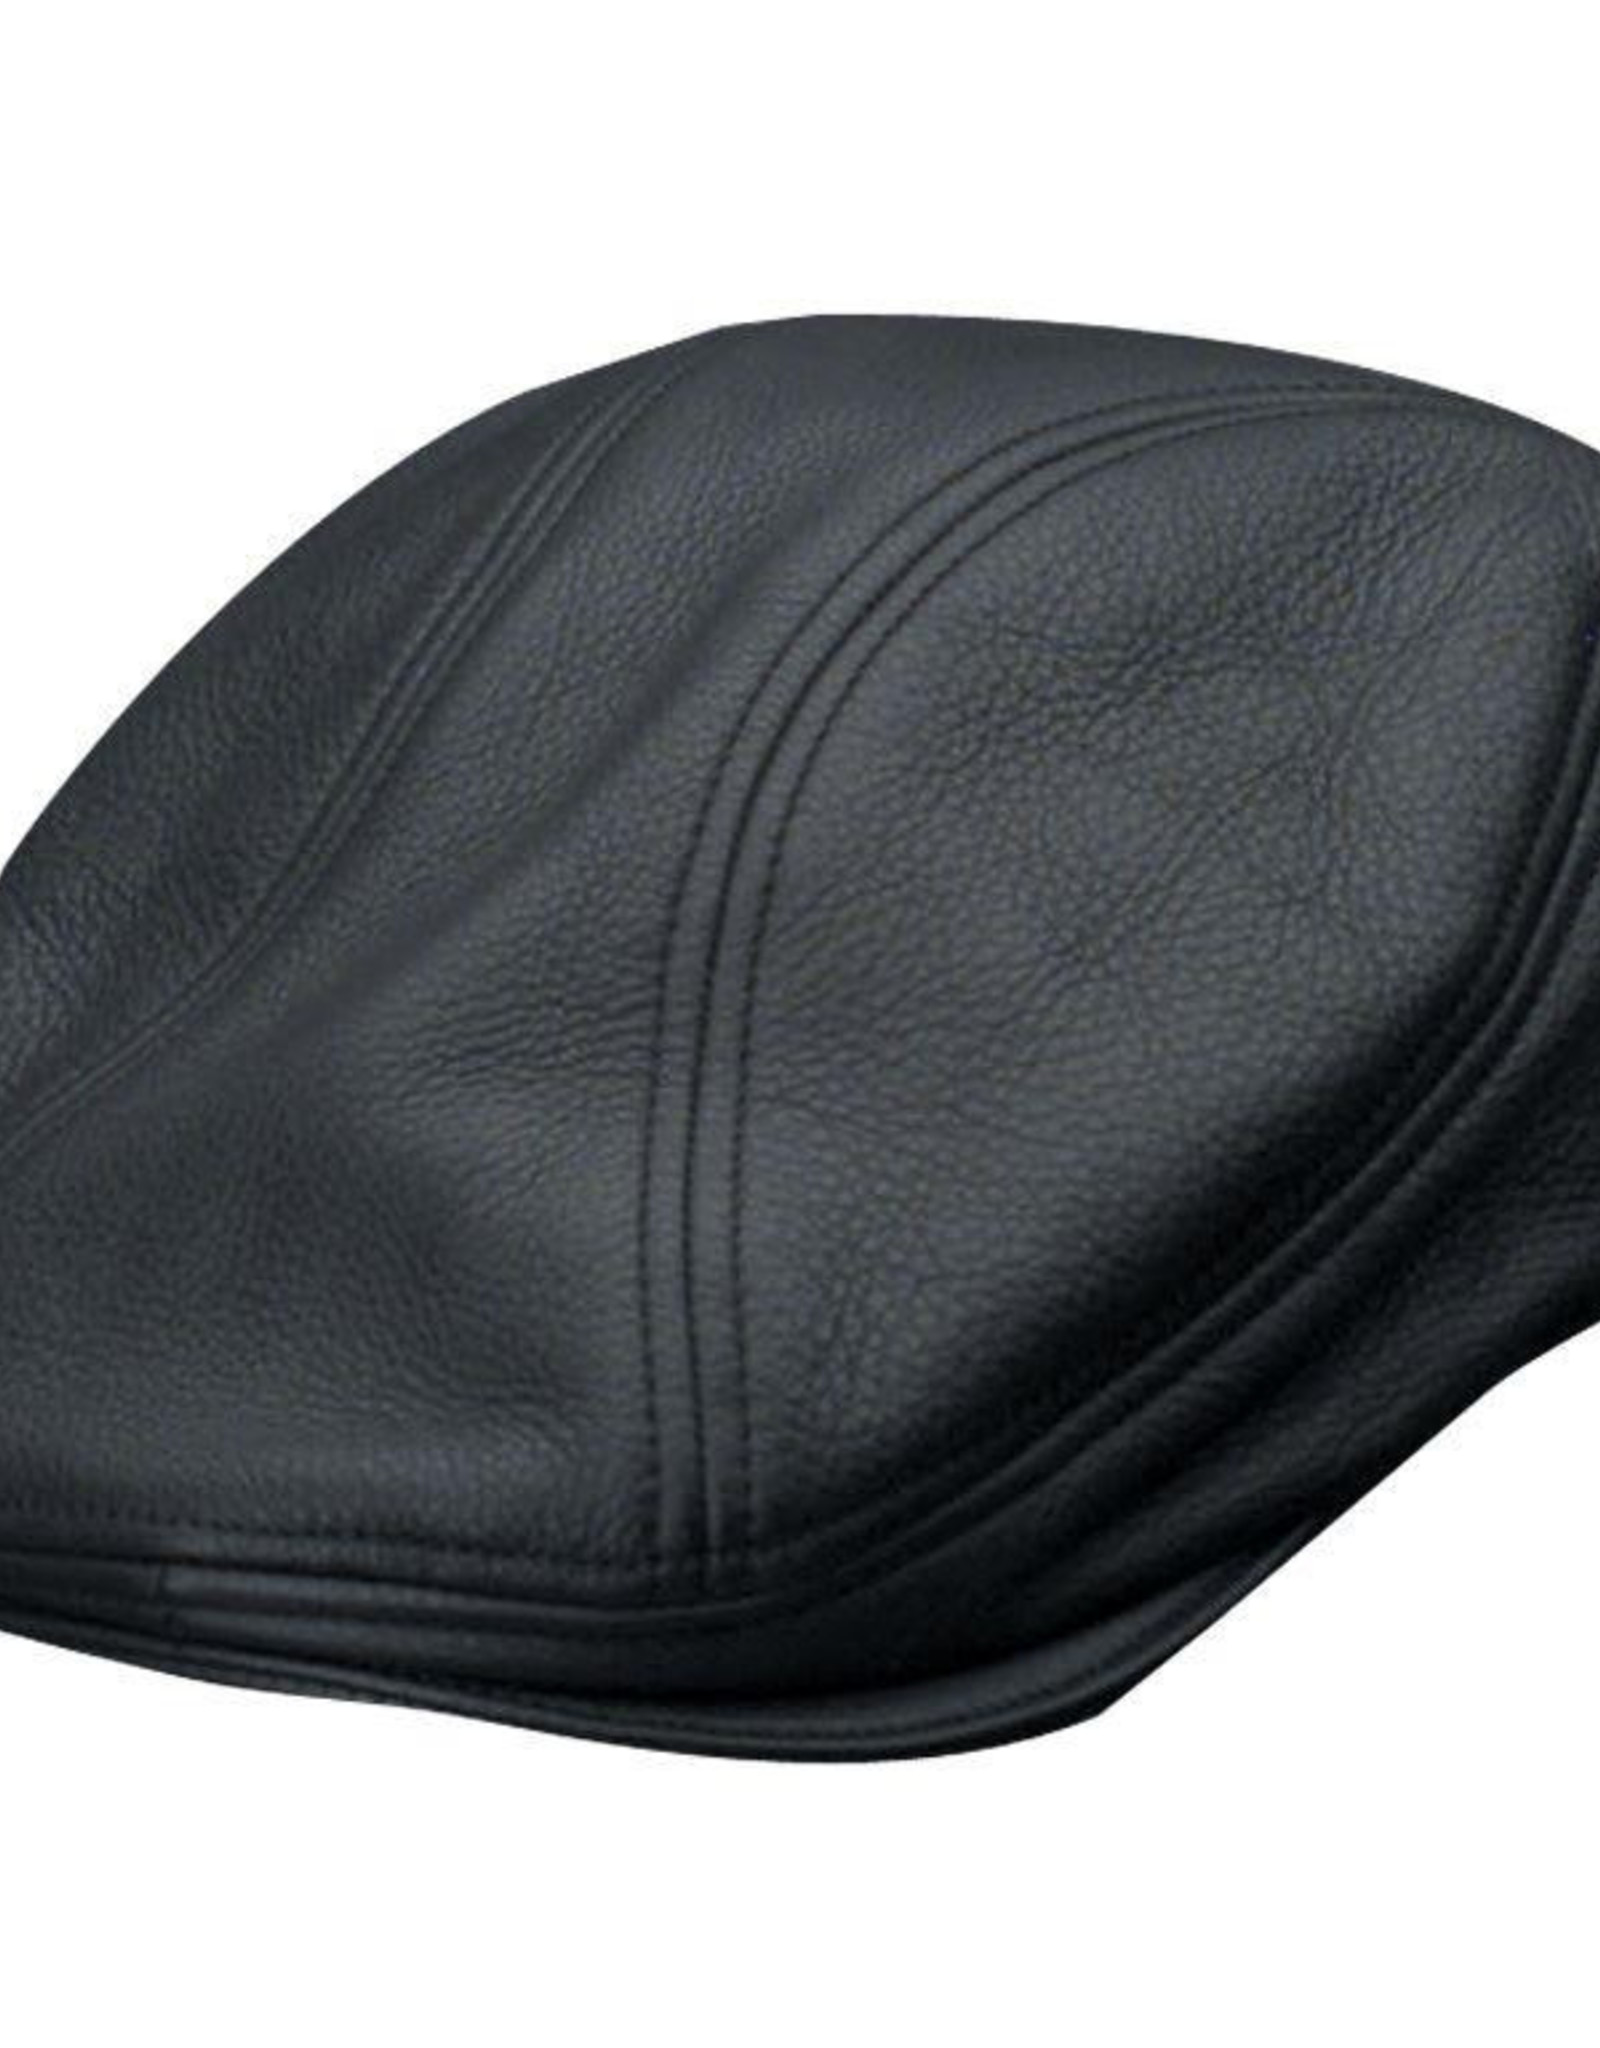 Hat Stetson  MOHER Oily Leather Black